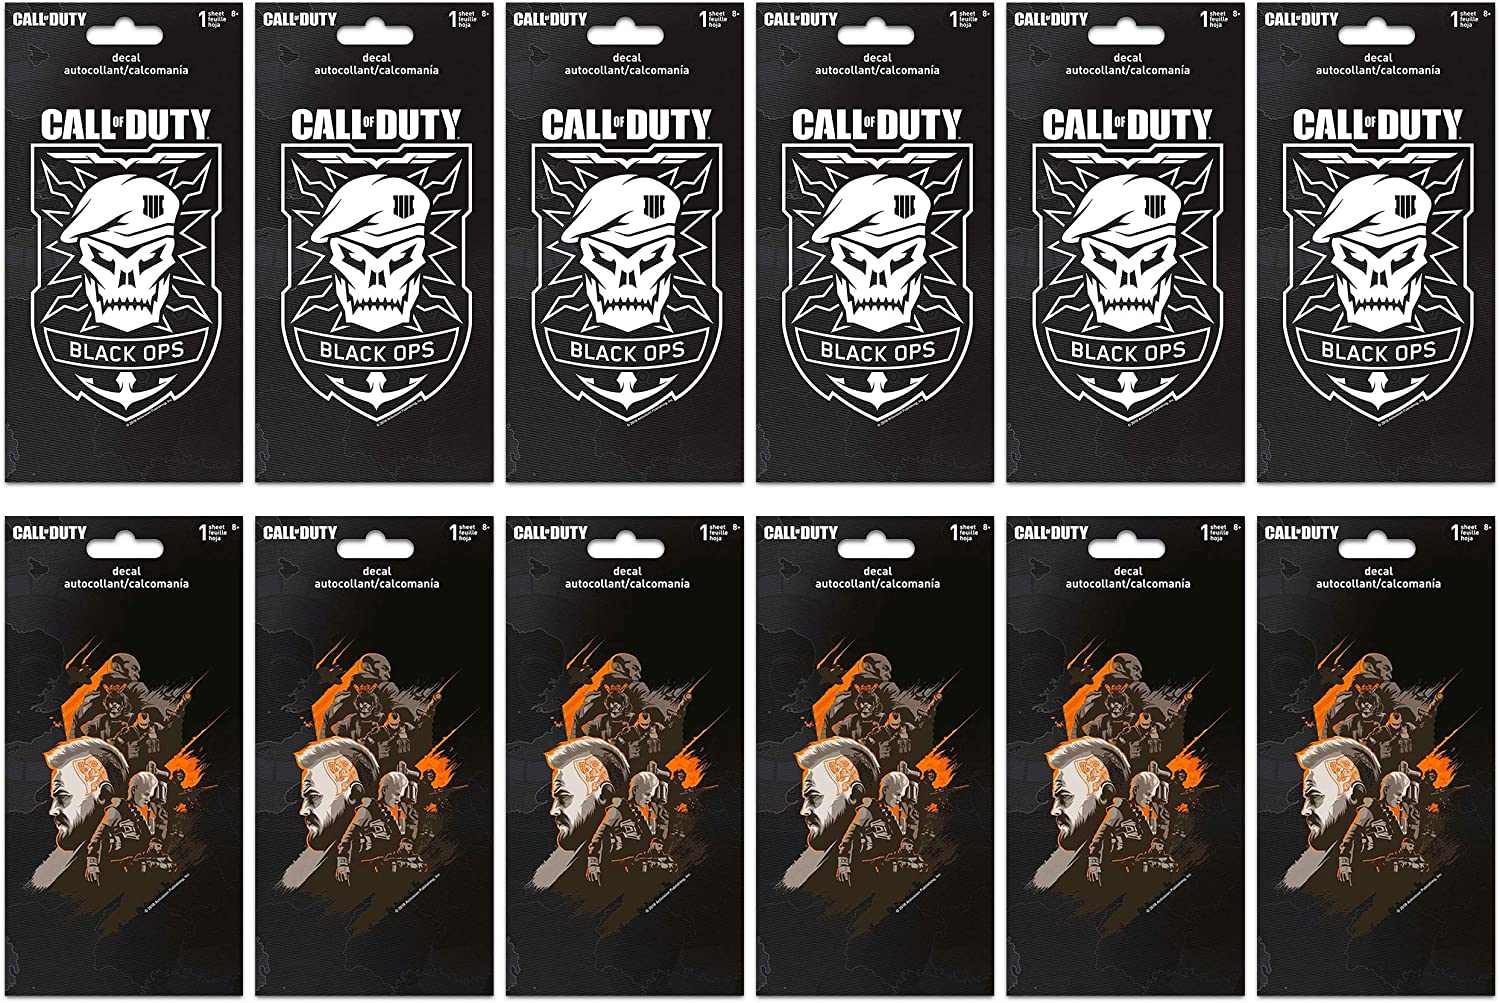 Call of Duty Decals Bundle Set ~ 12 Large Decal Stickers for Car, Laptop, Walls, (Video Game Party Favors)